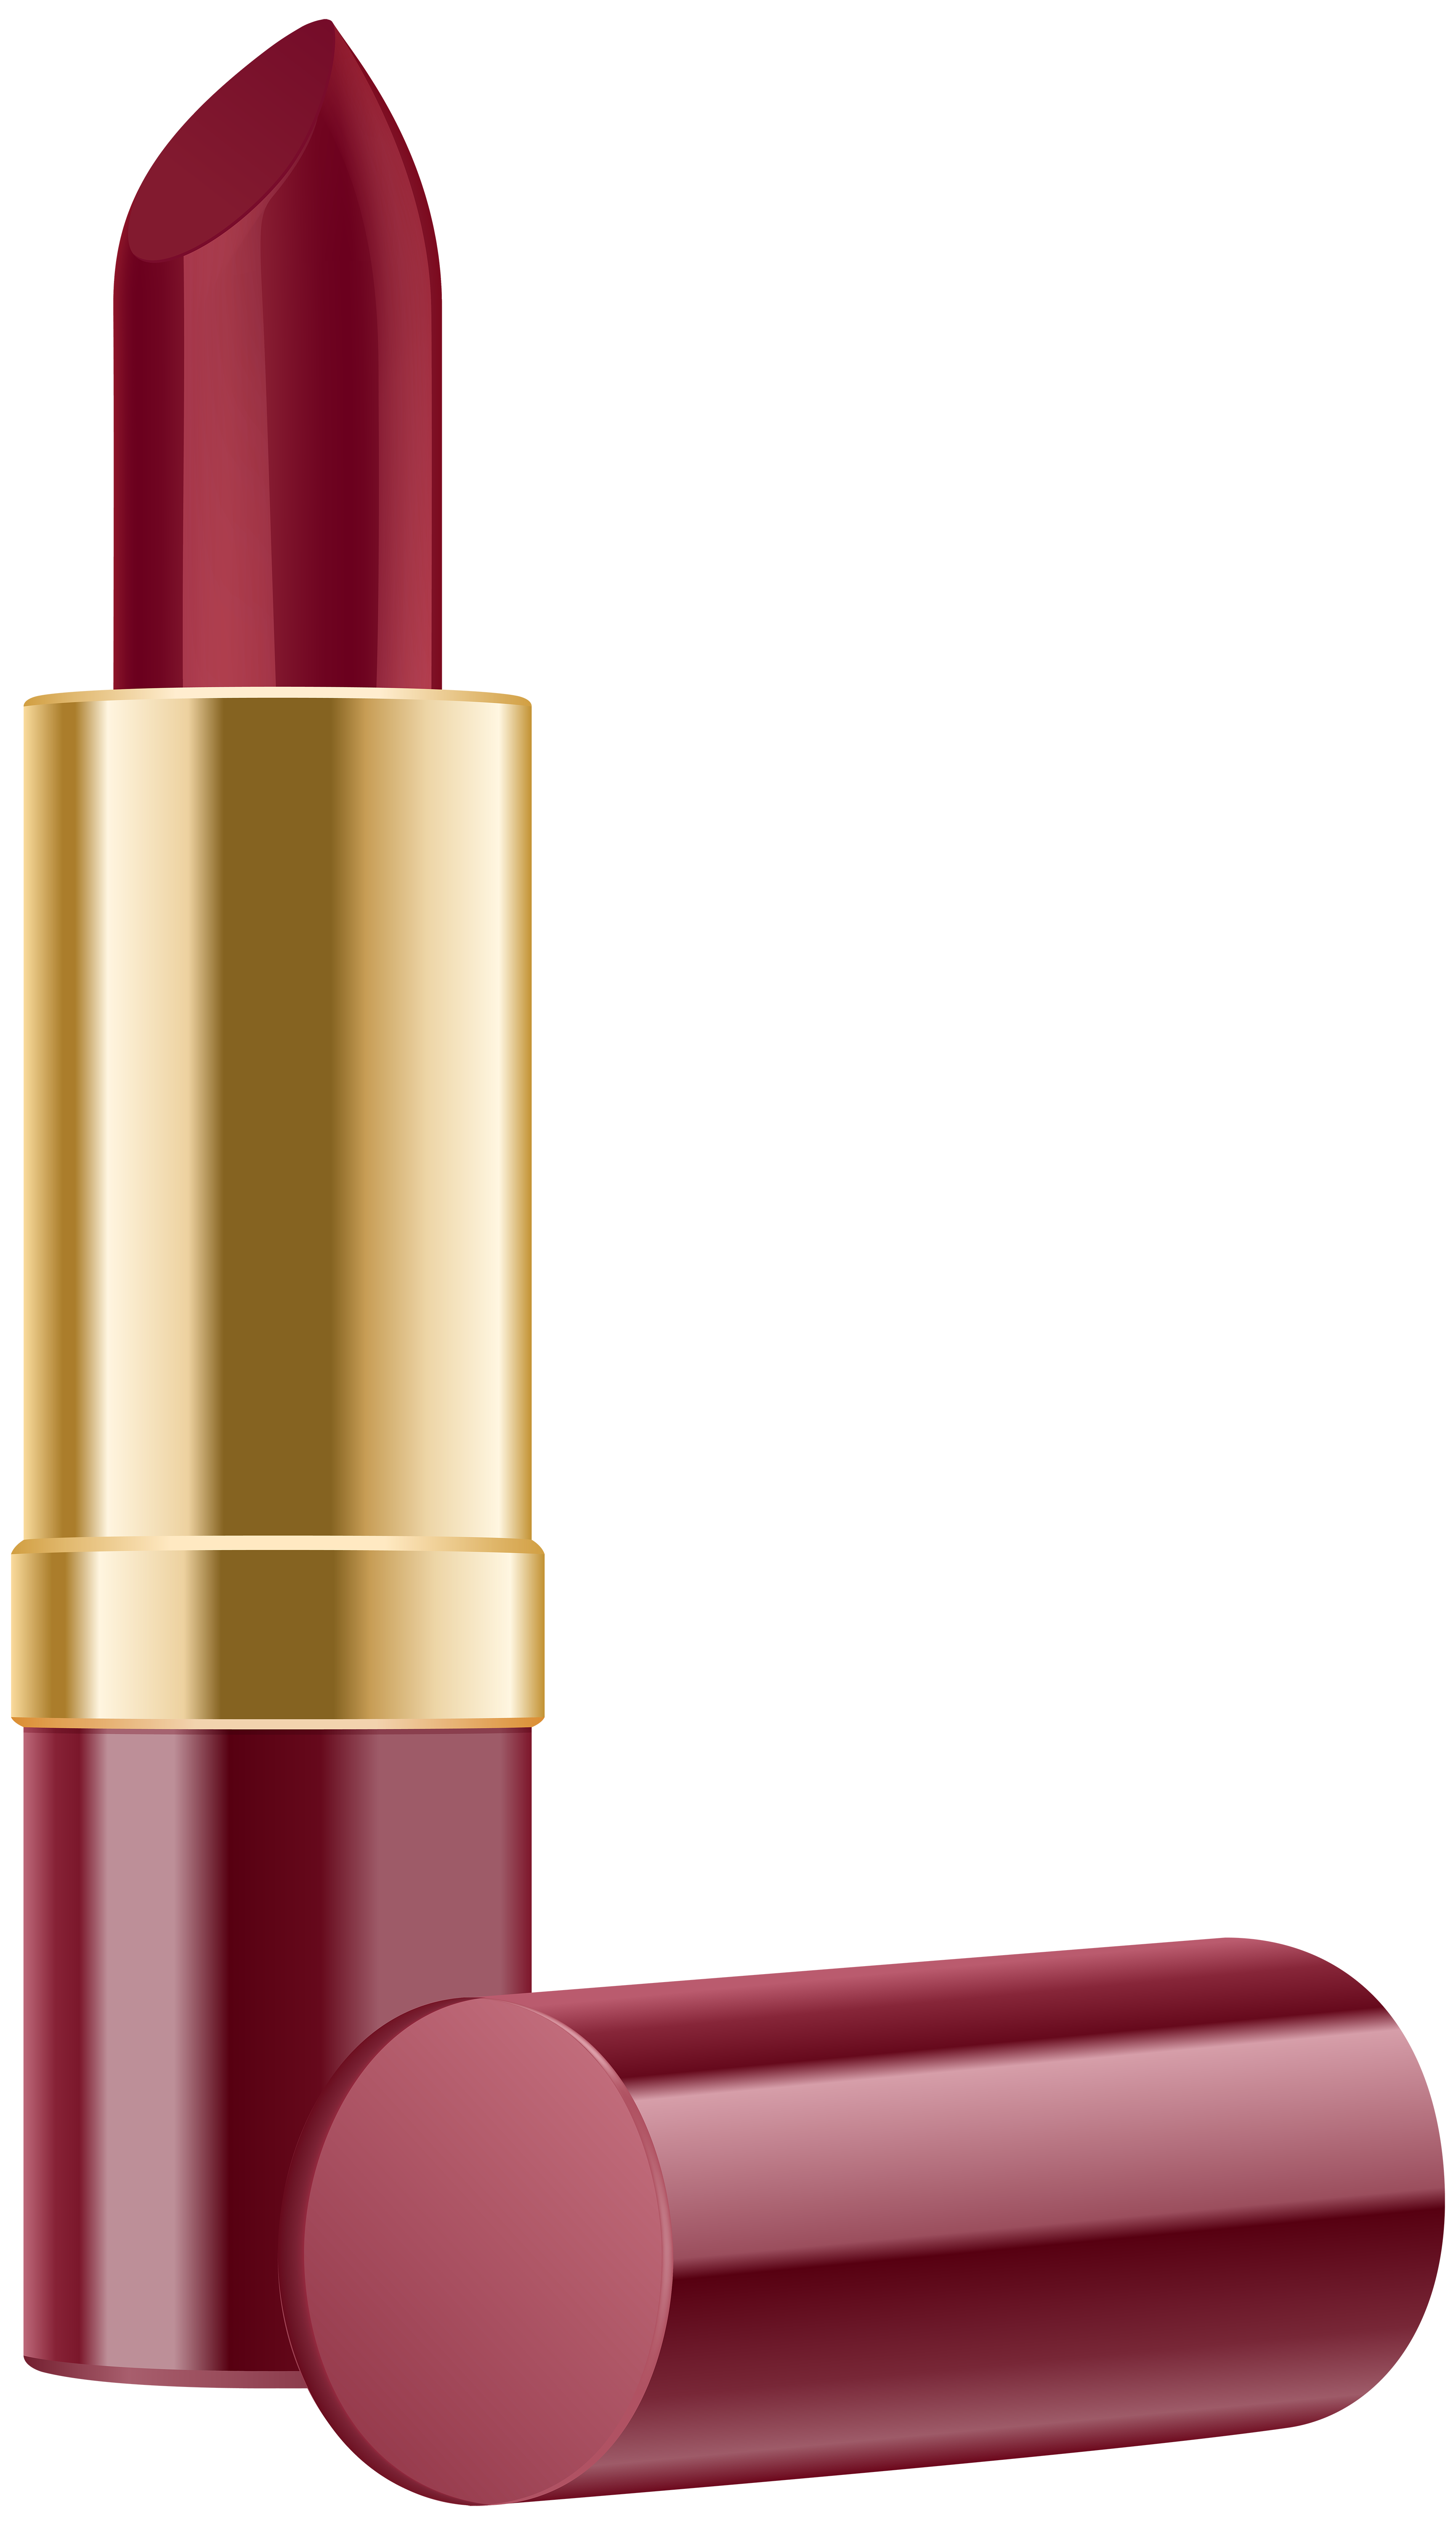 png library stock Red png clip art. Lipstick clipart